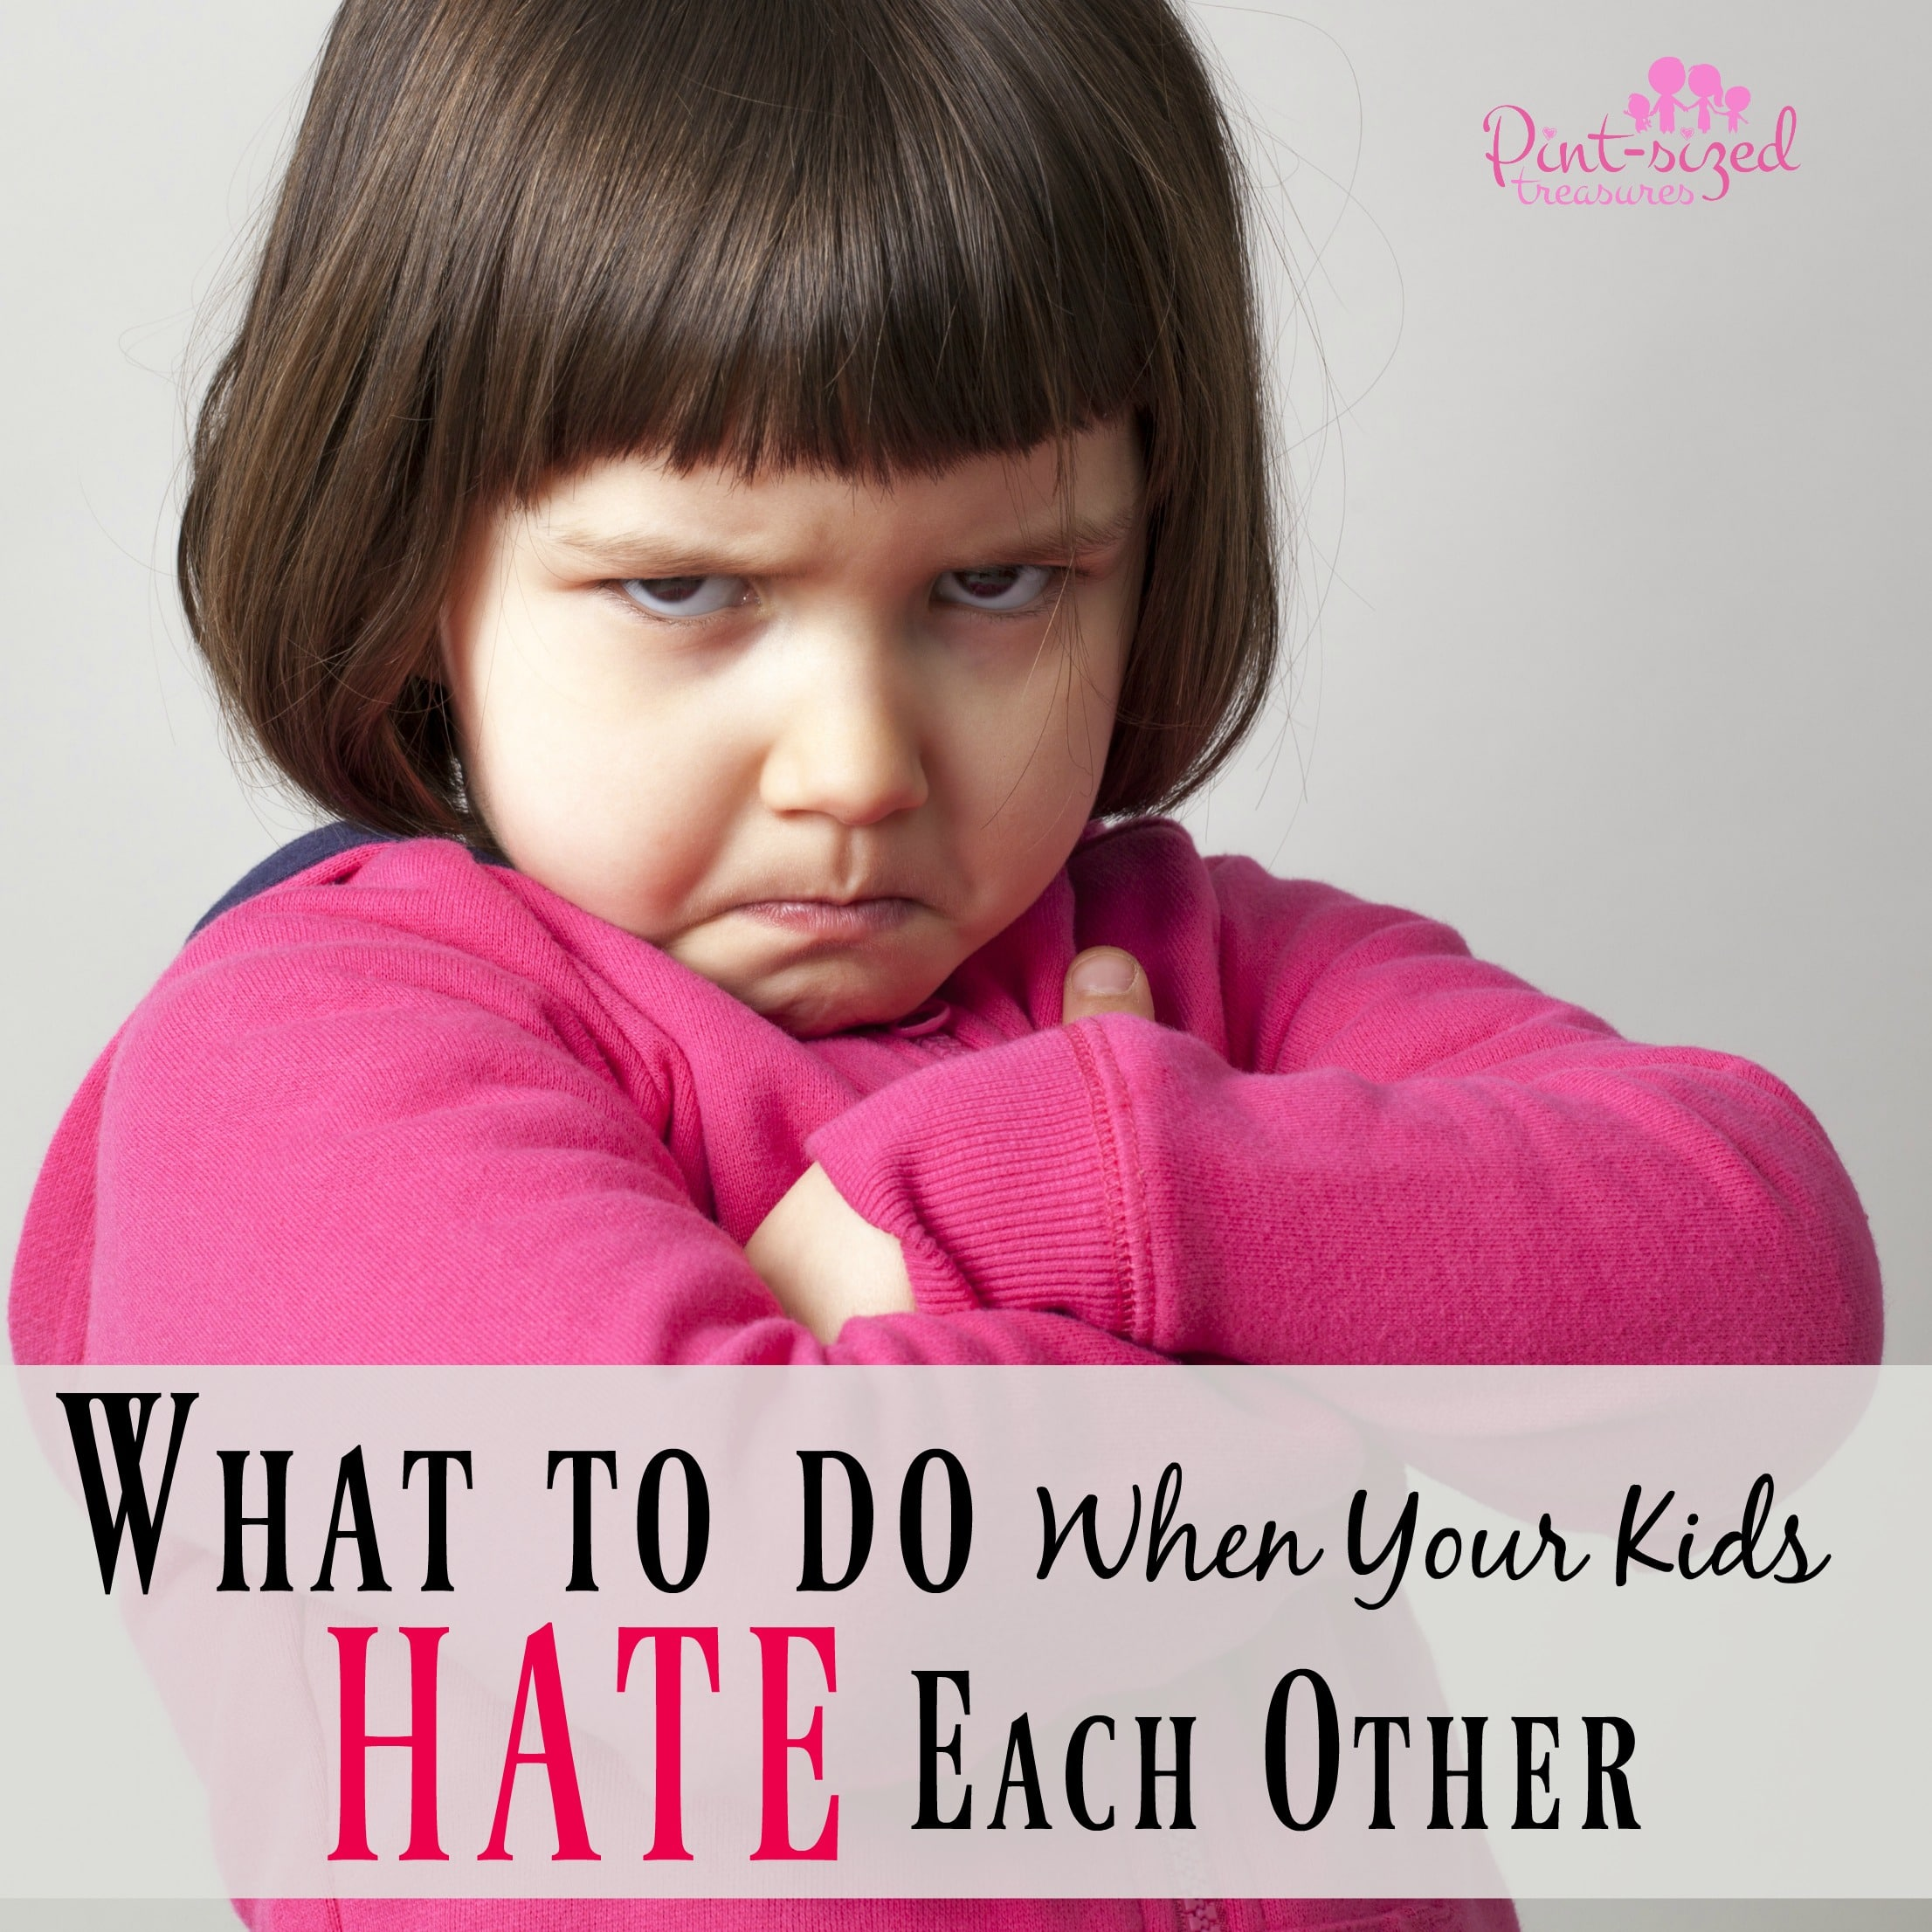 Dear Parents, this is what you can do when your kids hate each other